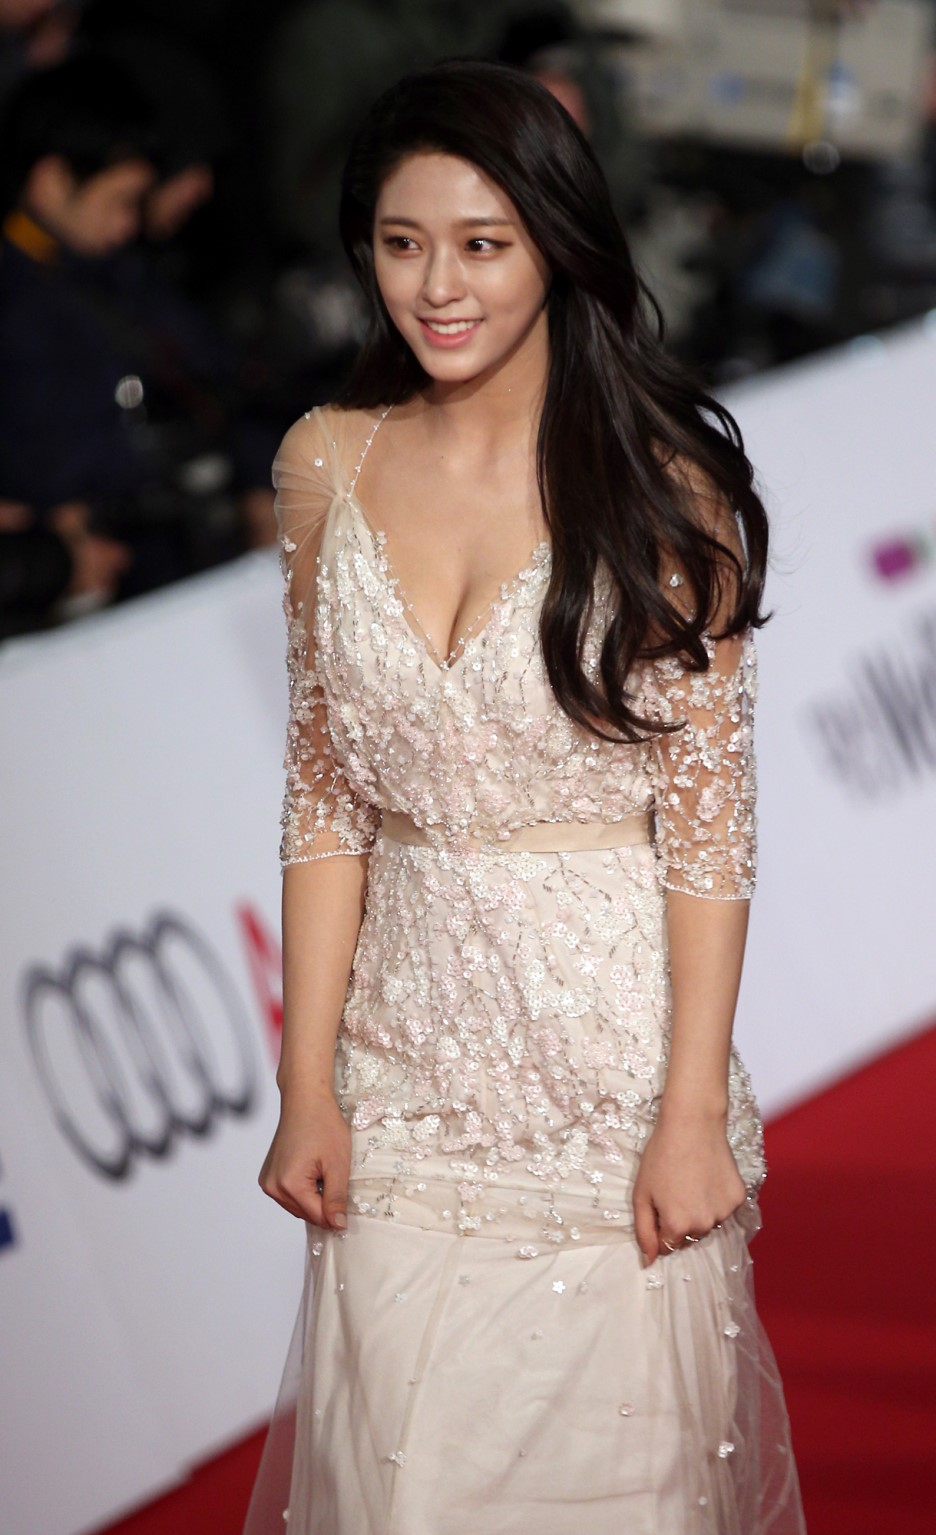 Privacy Policy >> Seolhyun wore a booby dress #GodBless – Asian Junkie